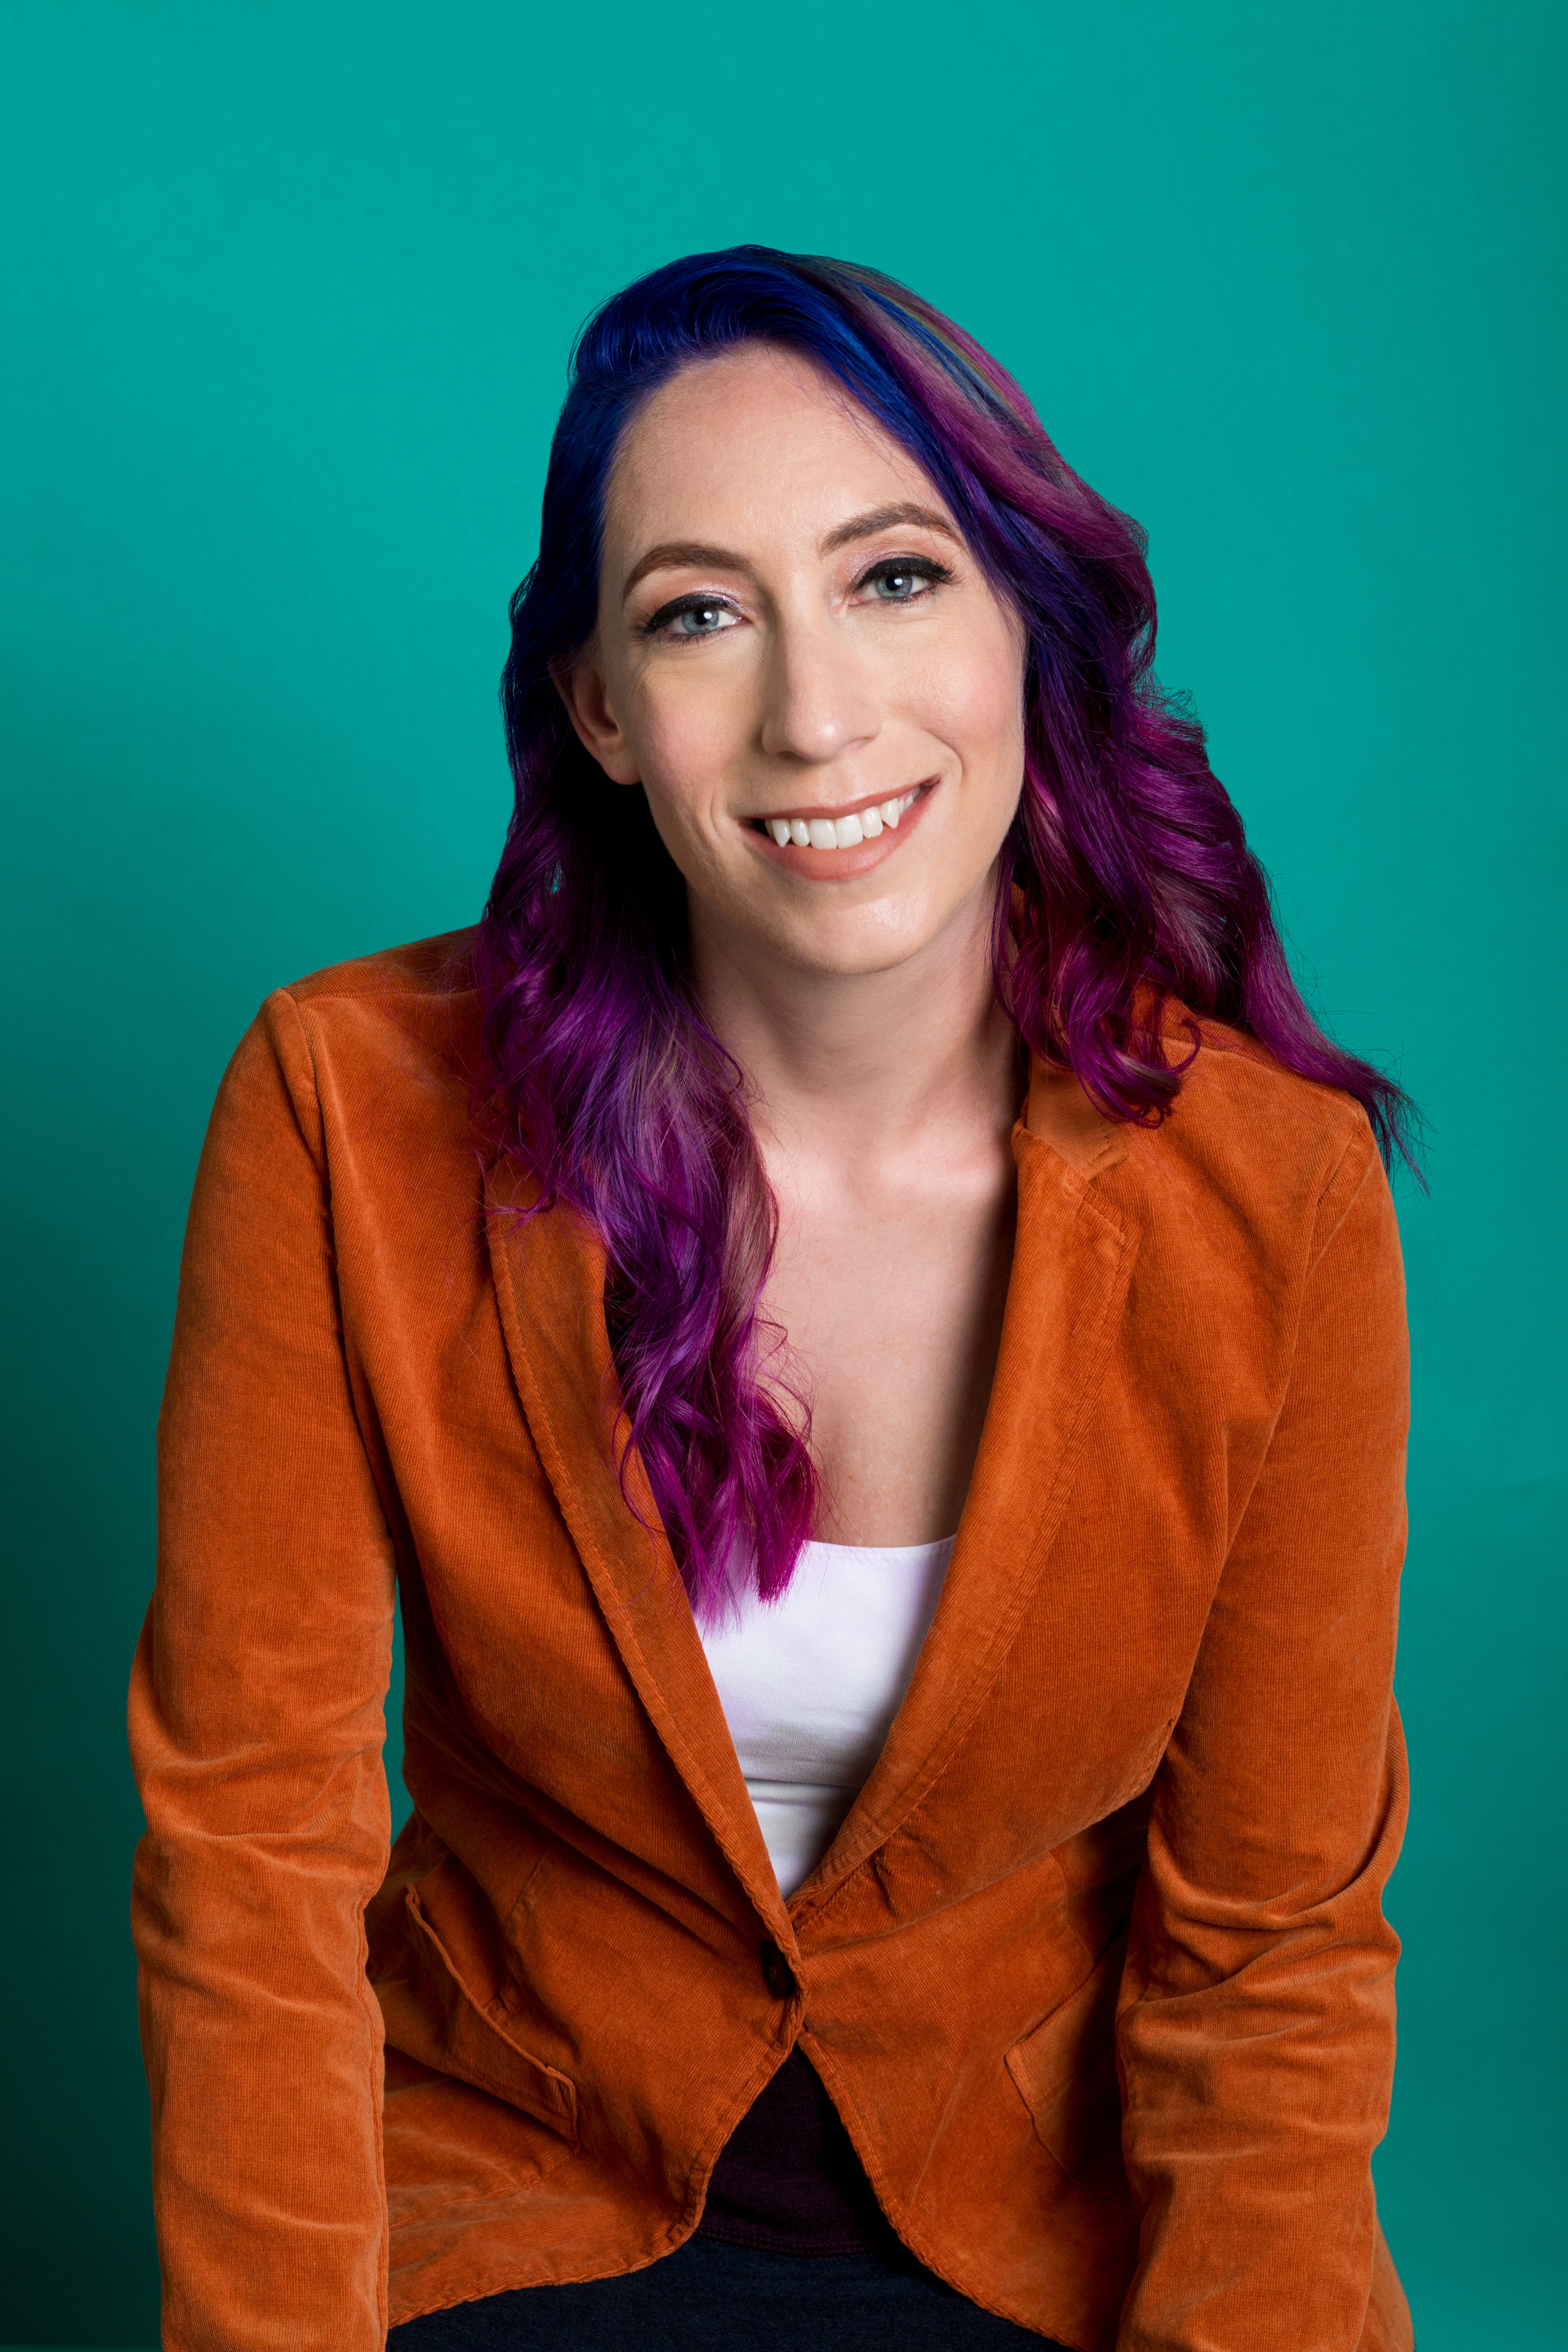 """Jelena woehr - Jelena Woehr is a writer, editor, creative, educator, and multitalented businesswoman residing in Los Angeles. Her produced scripted audio work appears on the Amazon Echo Dot: Kids' Edition (Disney skill) and on the Parcast podcasts """"Serial Killers,"""" """"Hostage,"""" and more.Her spec pilots for television have been recognized in major competitions, including: Top Three Winner, UCLA Extension Writers Program TV Writing Competition (2018); semi-finalist, Sundance Episodic Lab (2018); semi-finalist, Macro Episodic Lab (2018); and semi-finalist, Issa Rae x Color Creative Script to Screen Contest (2018).Jelena's work appears in print in publications including Thrice Fiction Magazine and Equus Magazine, and online at sites including i-D (from Vice), Business Insider, CMX Hub and Medium."""